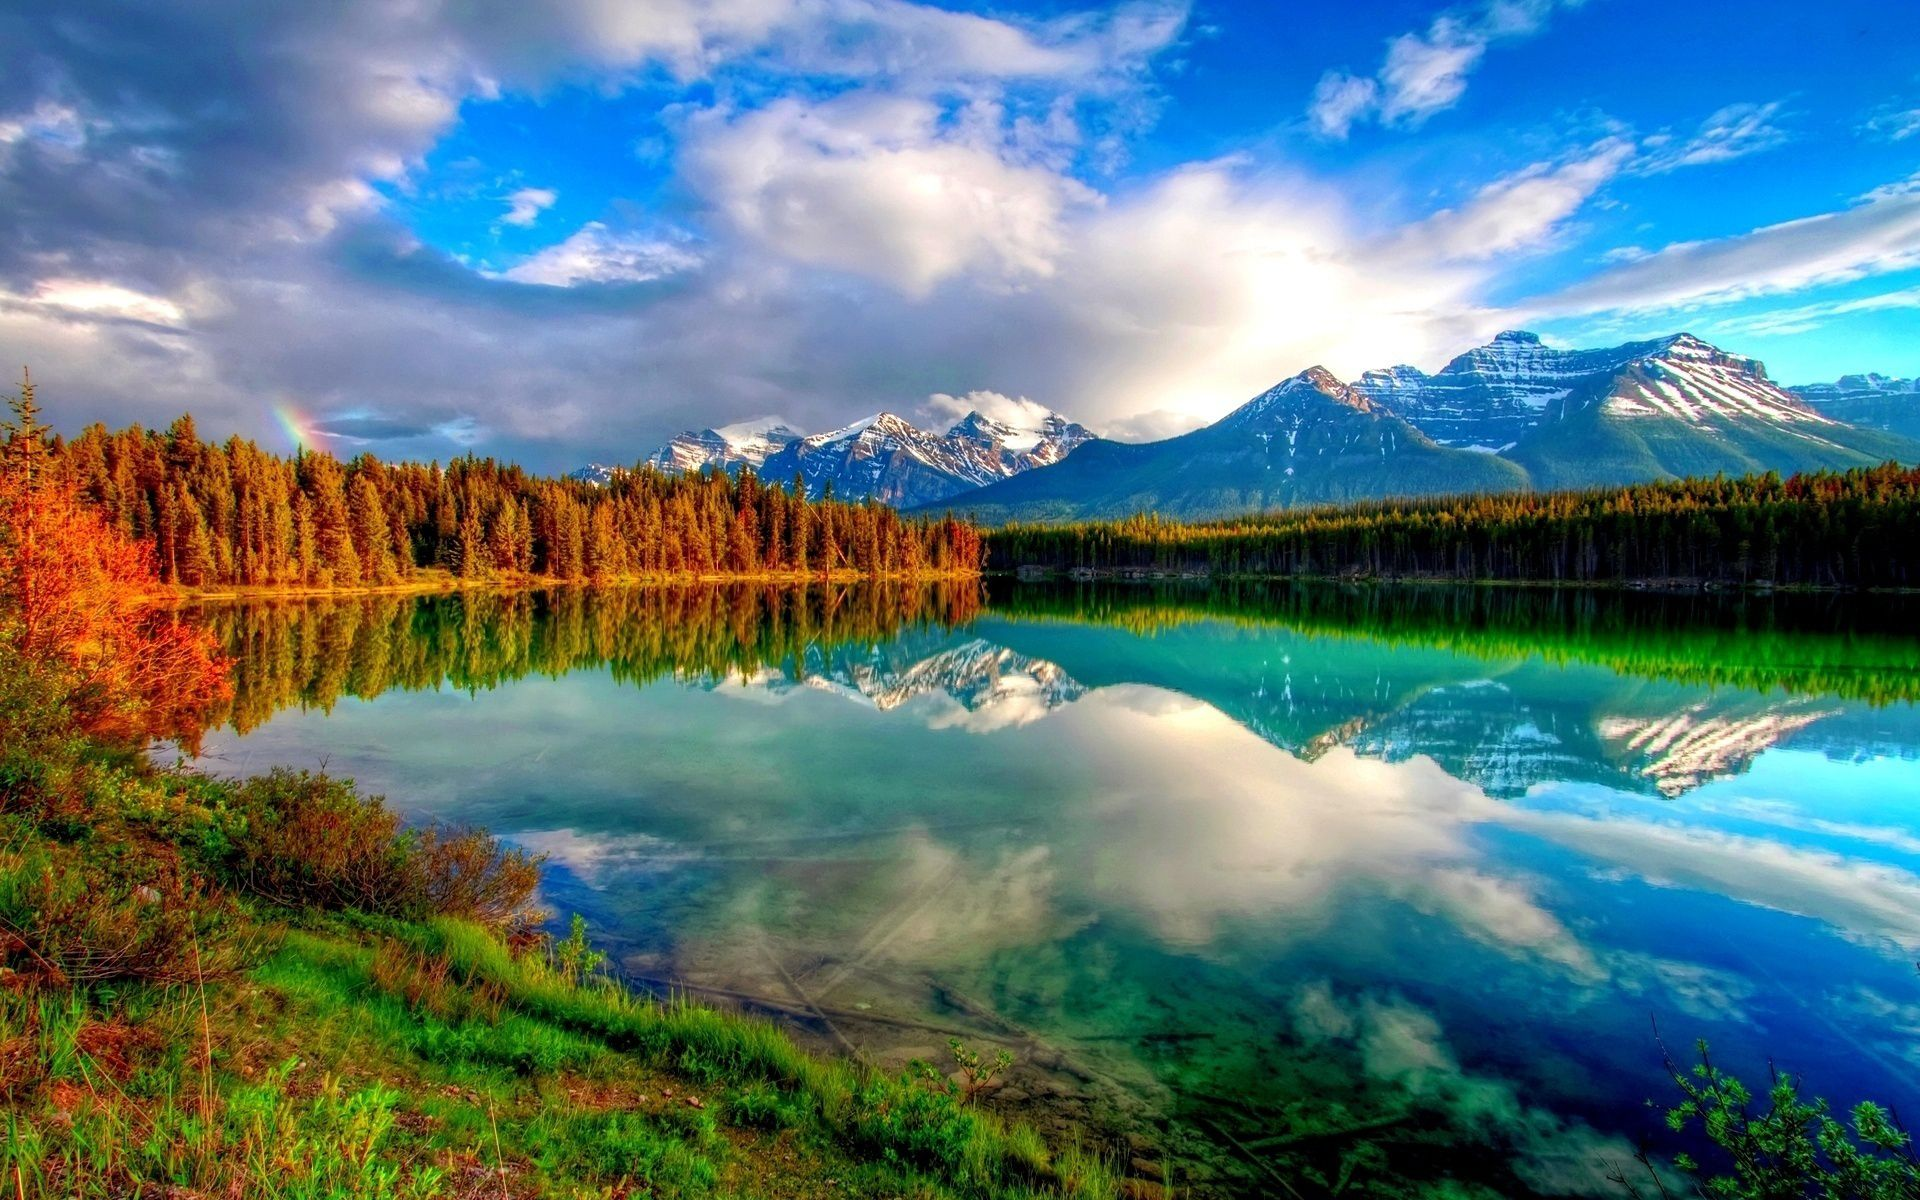 Pin By Courtney Byers On Life Is Art Scenery Wallpaper Beautiful Scenery Wallpaper Nature Wallpaper